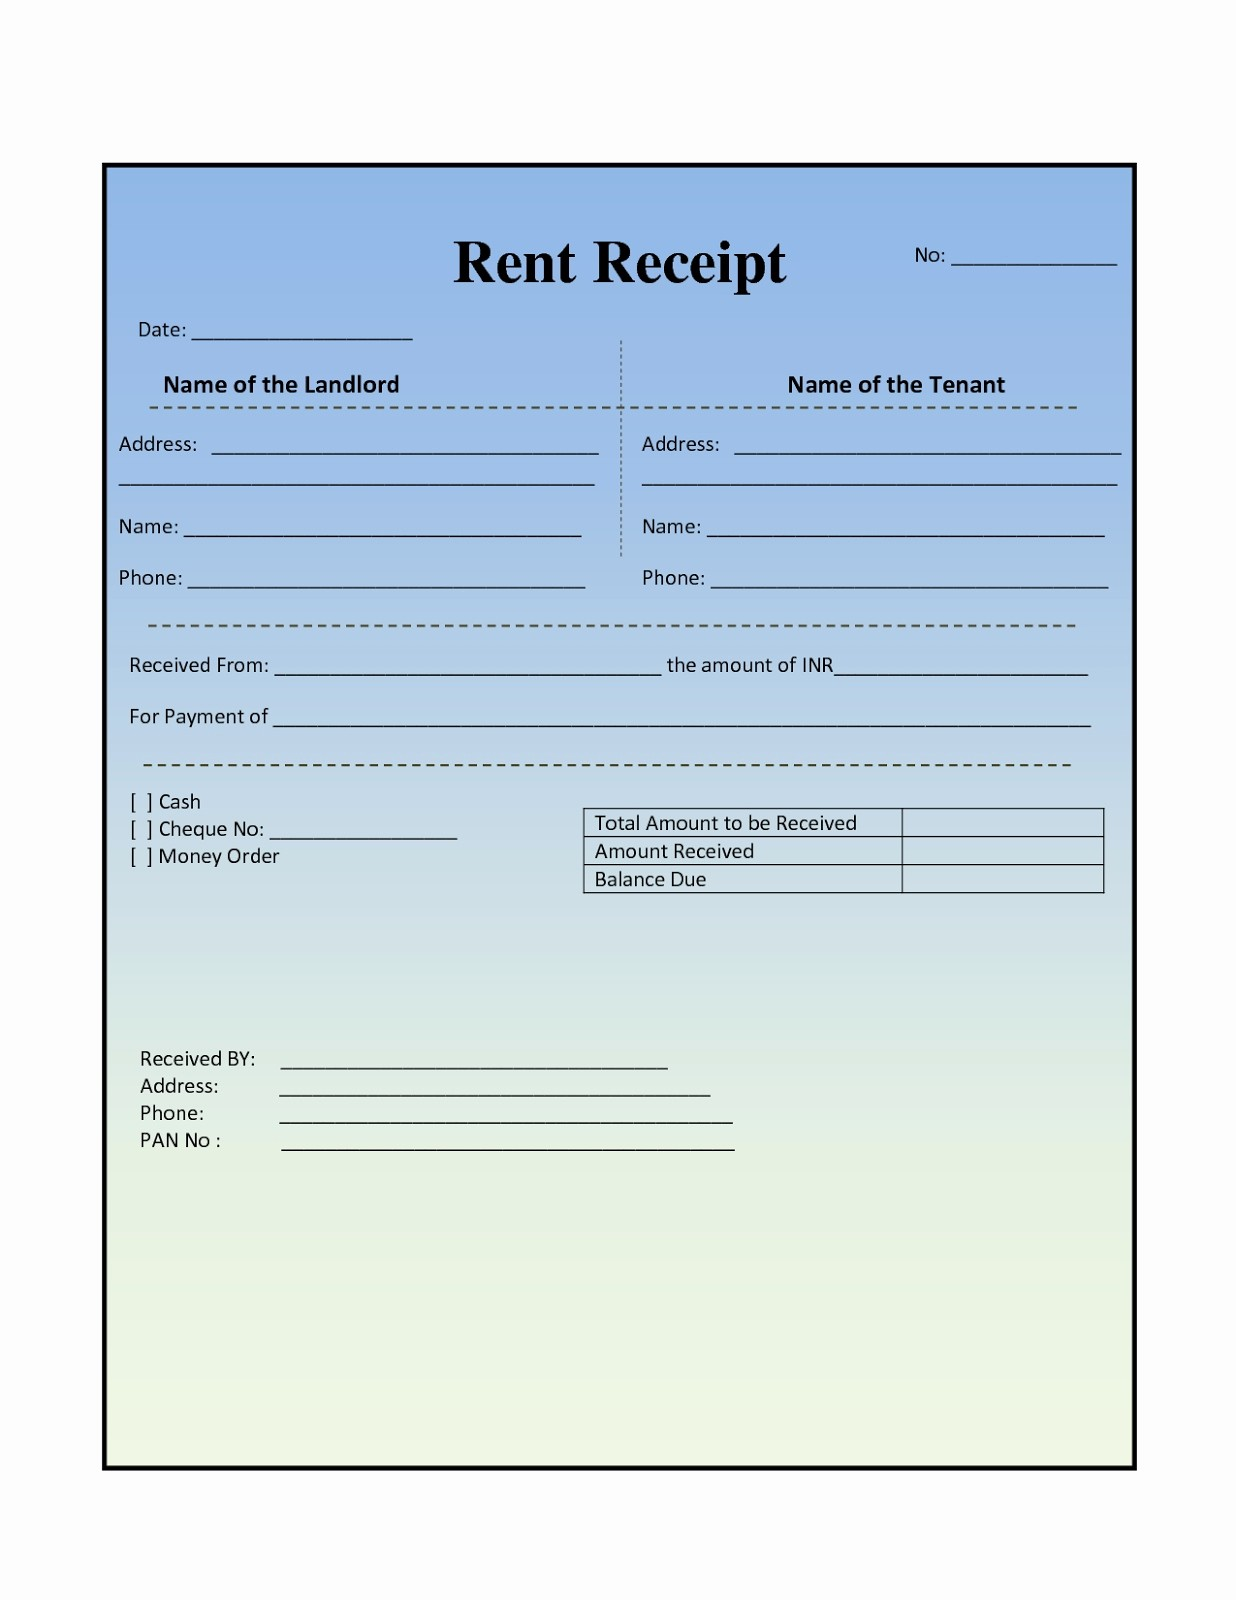 Microsoft Word Receipt Template Free Fresh Receipt Template Microsoft Word 28 Images 4 Receipt